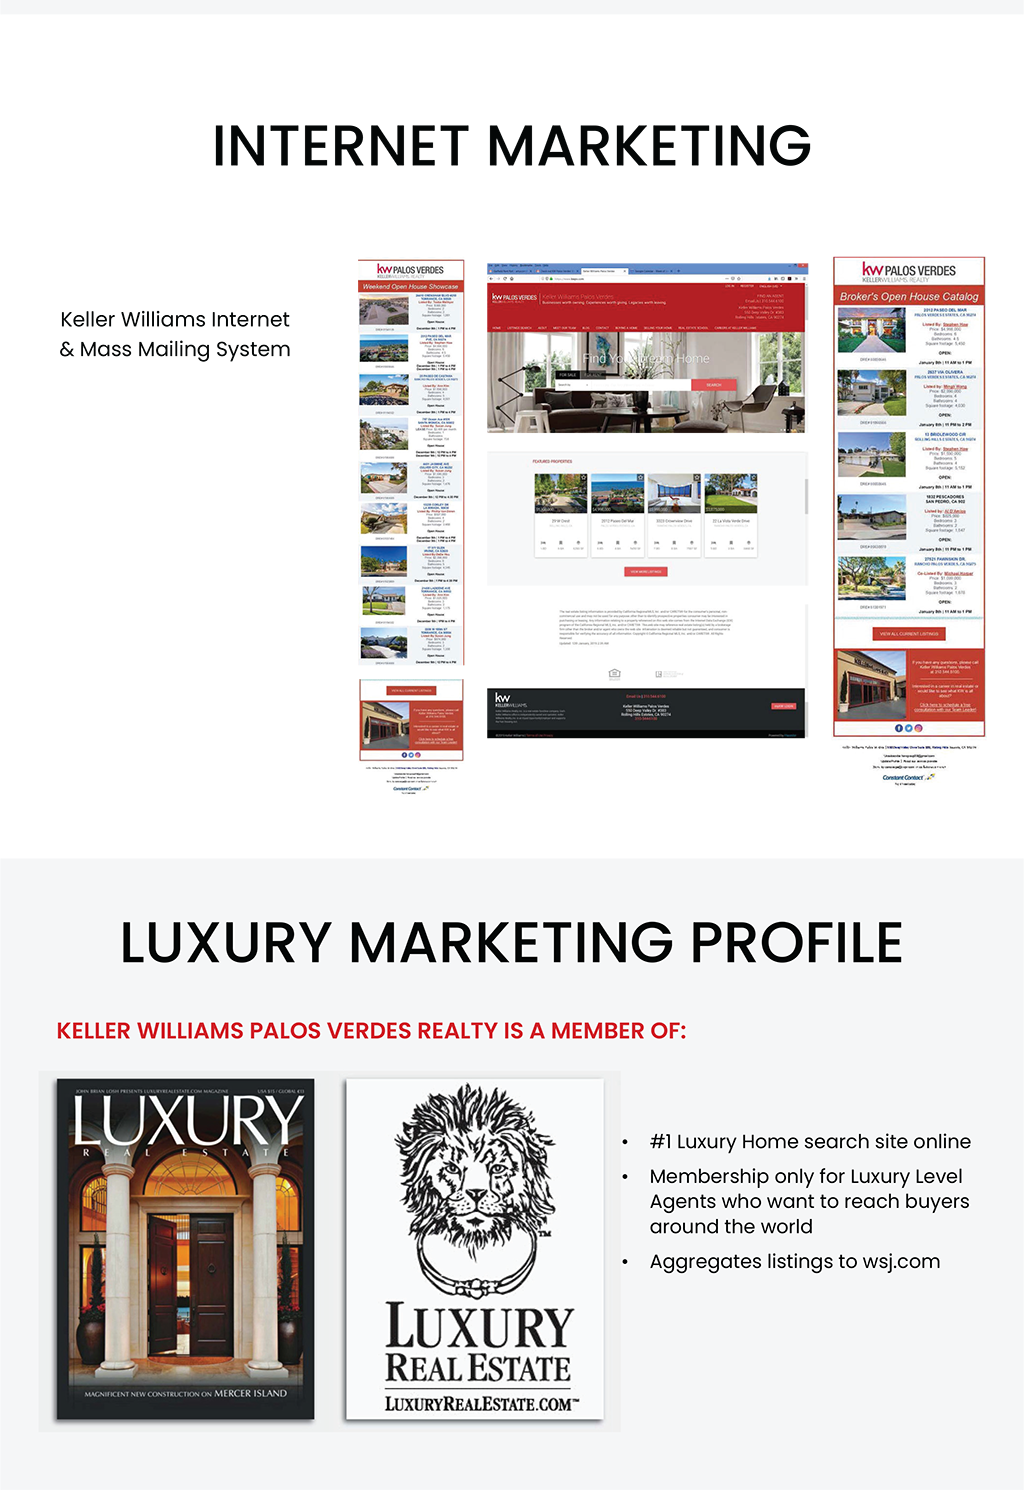 Internet marketing. Keller williams internet & mass mailing system. luxury marketing profile. keller williams palos verdes realty is a member of: #1 luxury home search site online. membership only for luxury level agents who want to reach buyers around the world. Aggregates listings to wsj.com